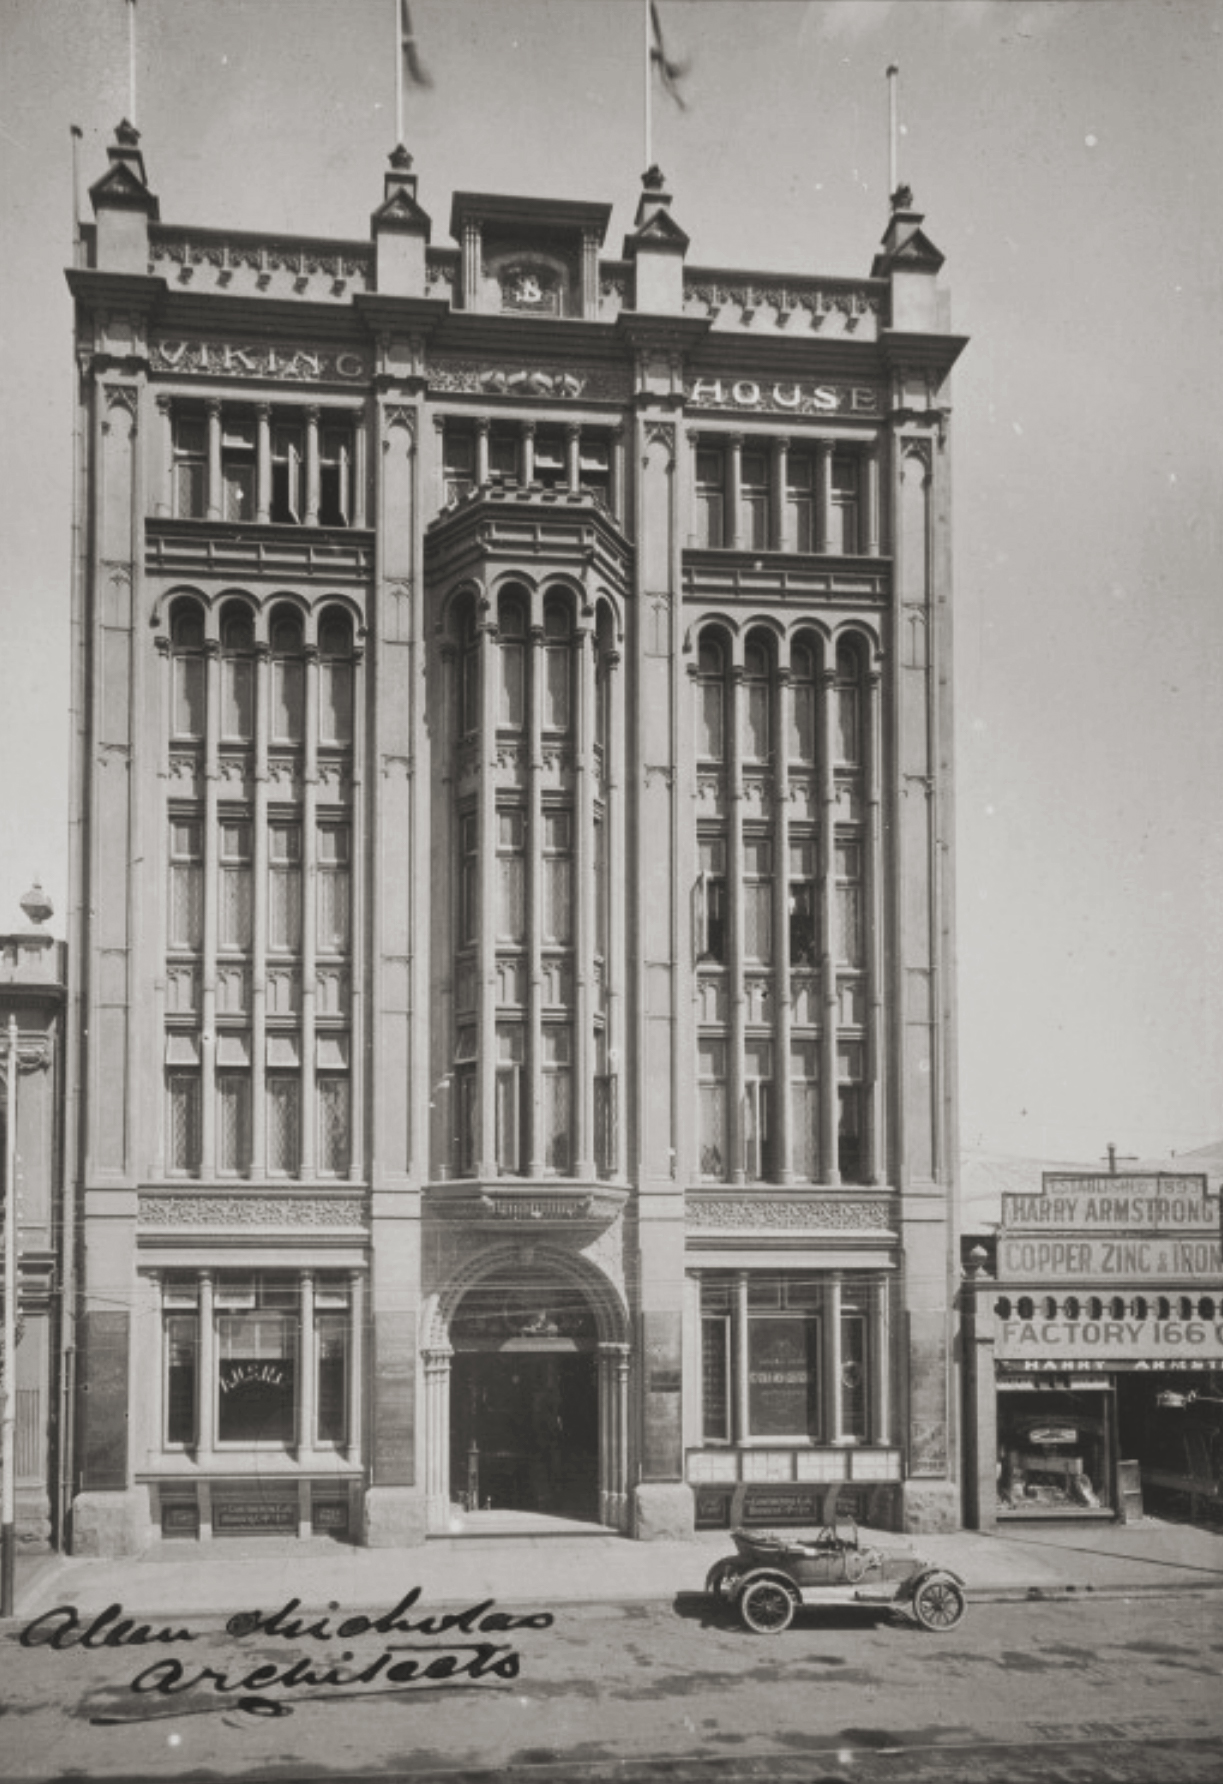 Viking House, 49 William Street, Perth. Built in 1912 by Richard Strelitz, demolished in 1970. Courtesy State Library of Western Australia, image b1967383_2